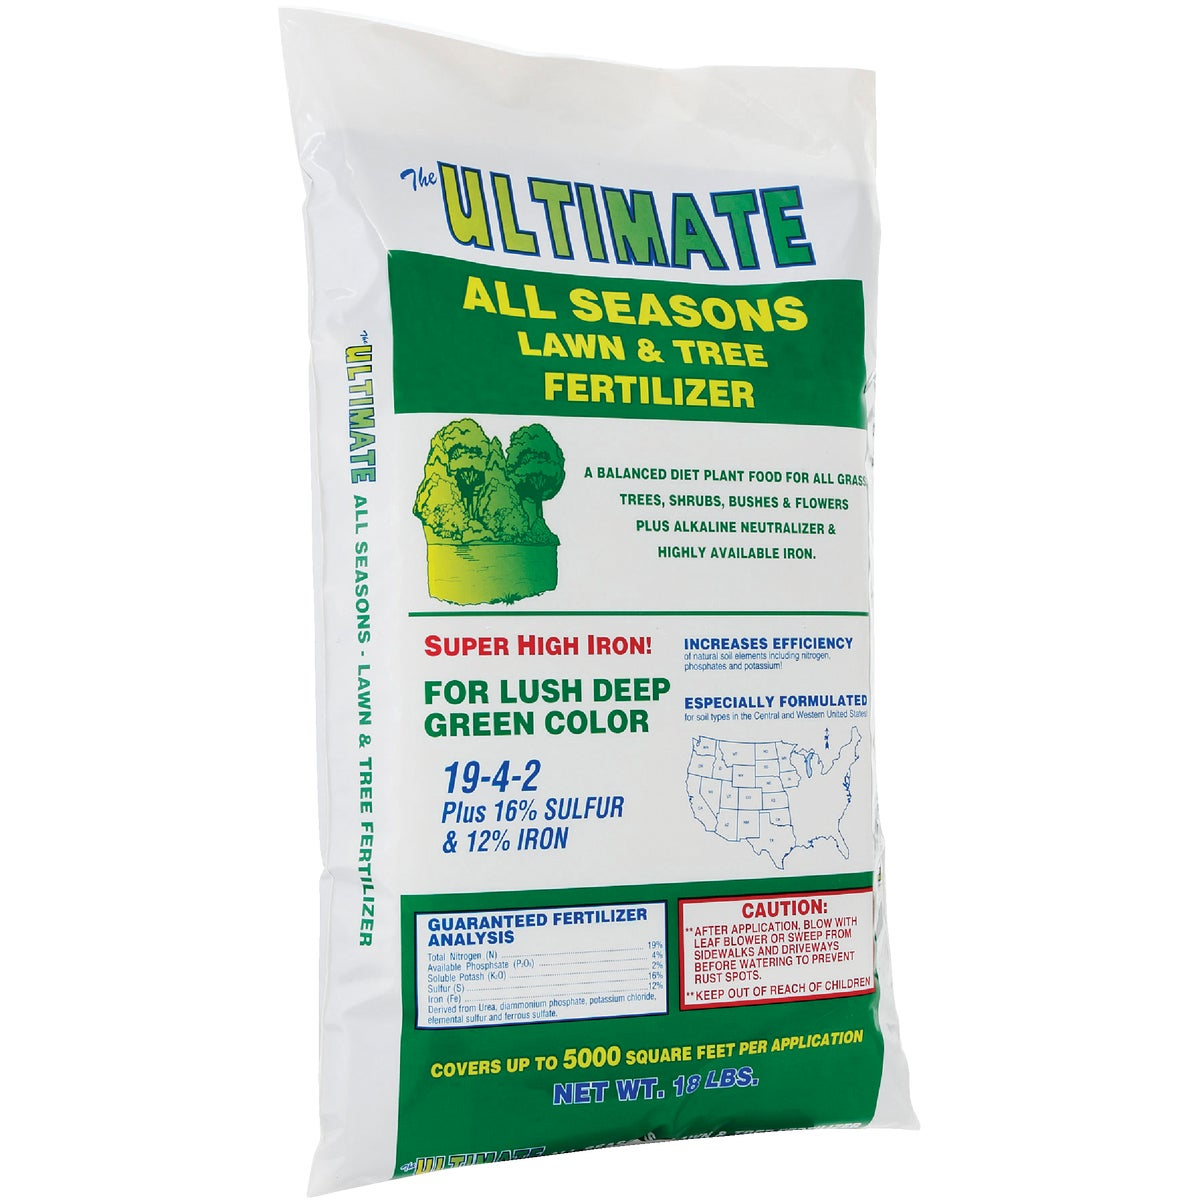 LAWN & TREE FERTILIZER - 121 by Ultimate Fertilizer